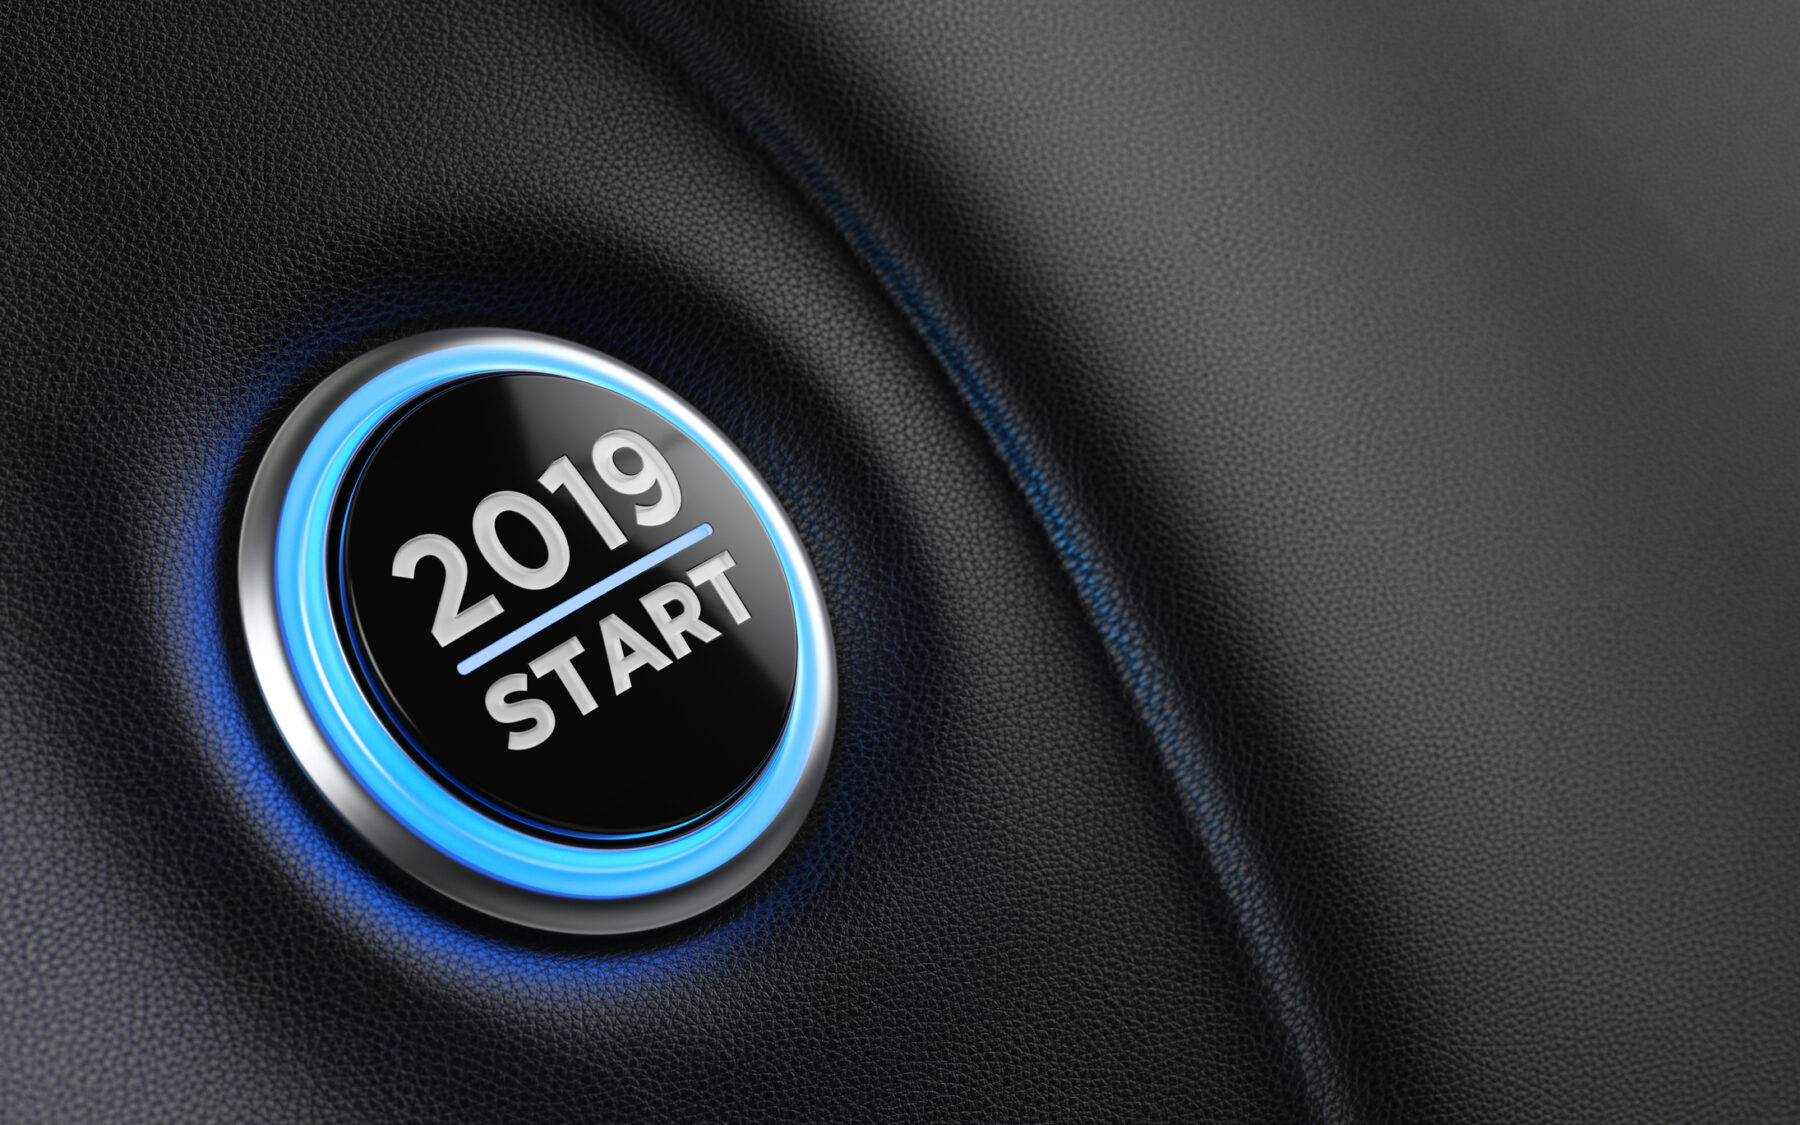 6 New Year's Resolutions for 2019